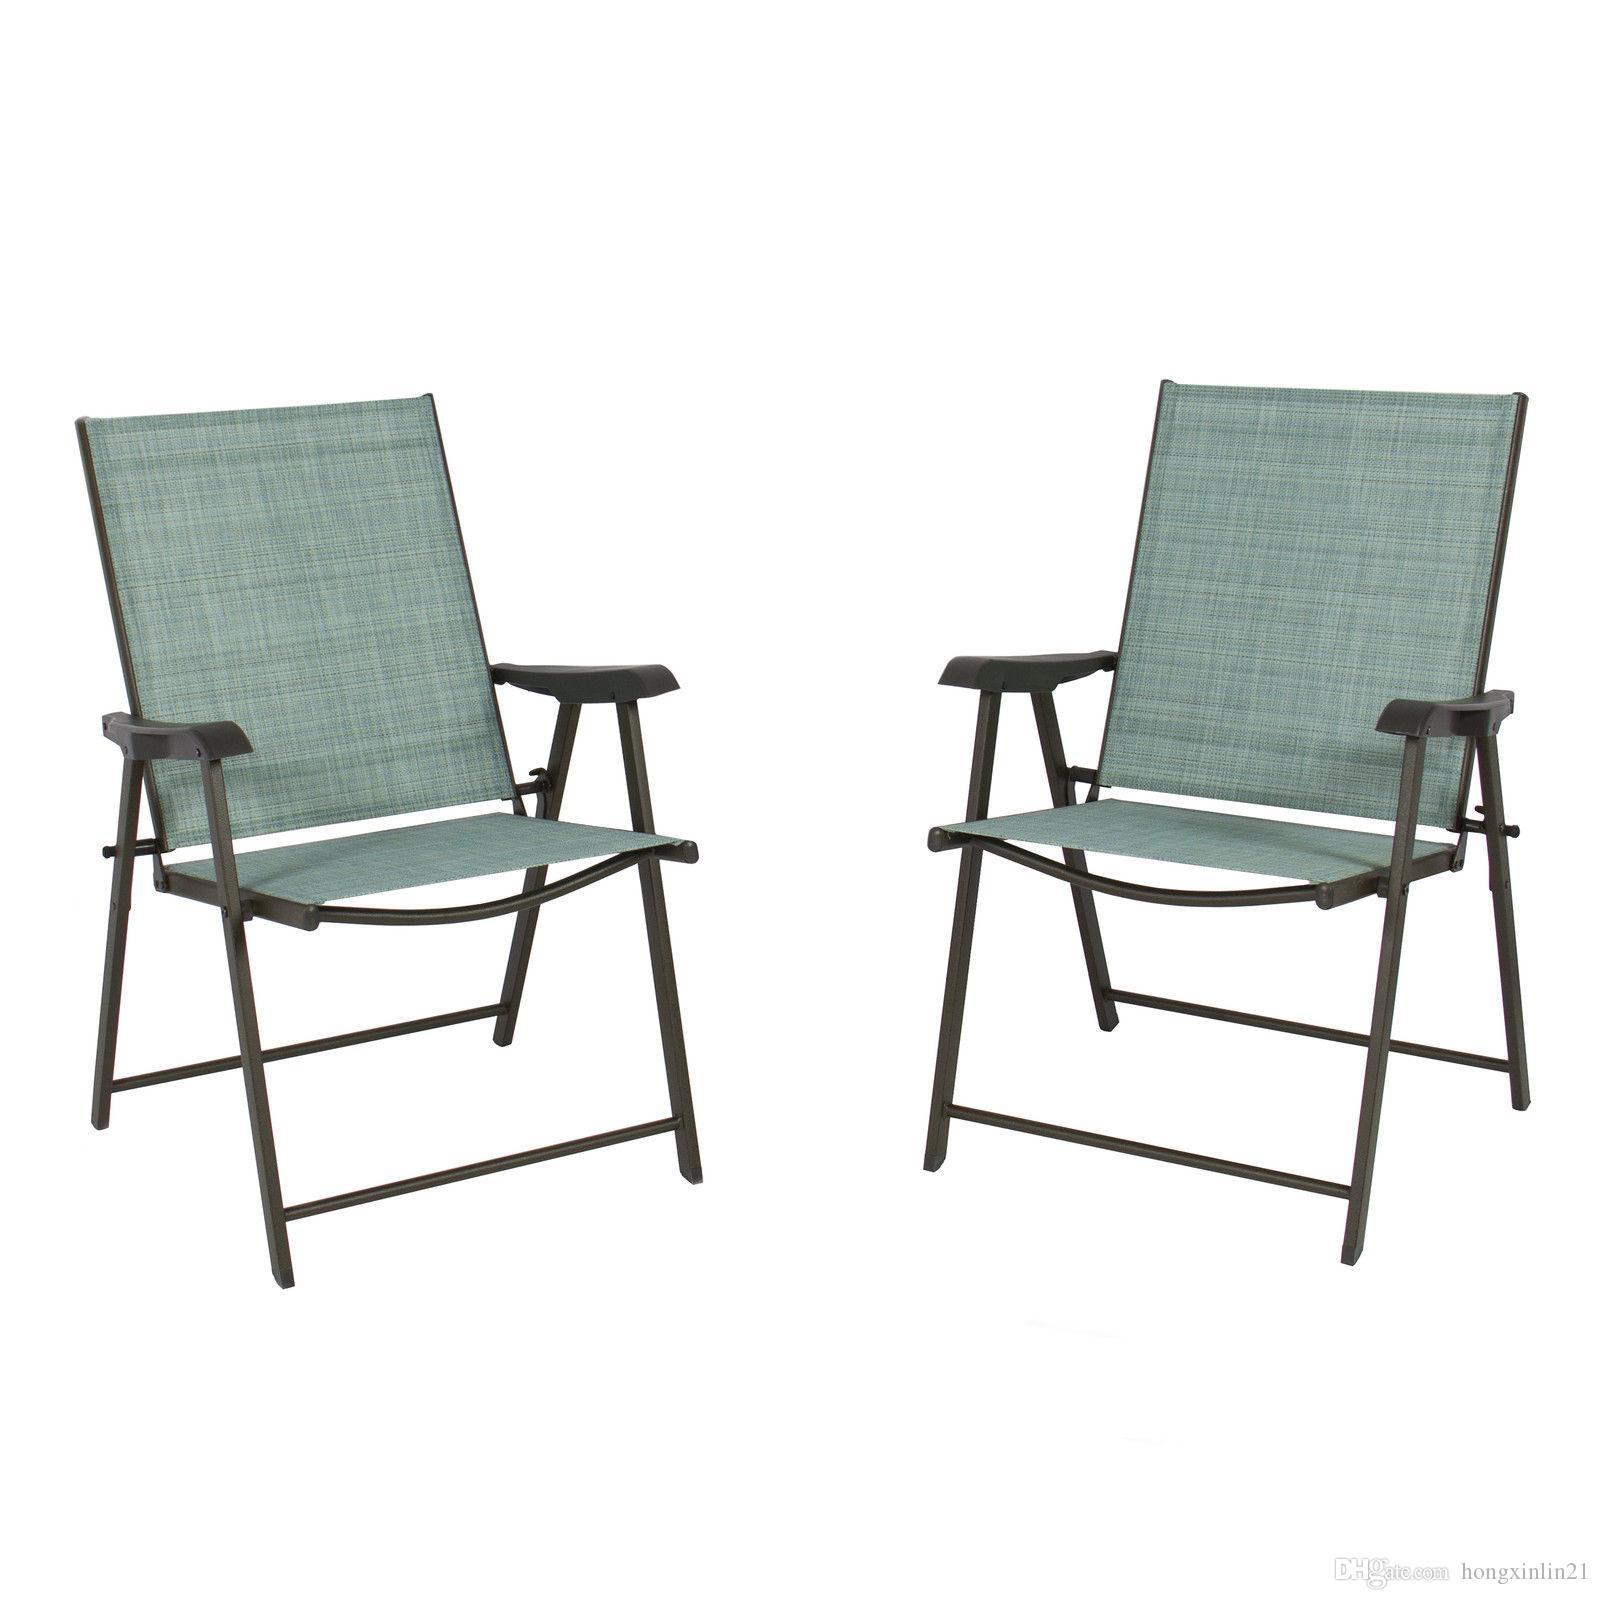 space saving patio furniture. Of 2 Folding Chairs Sling Bistro Set Outdoor Patio Furniture Space Saving From Hongxinlin21, $55.28 | Dhgate.Com